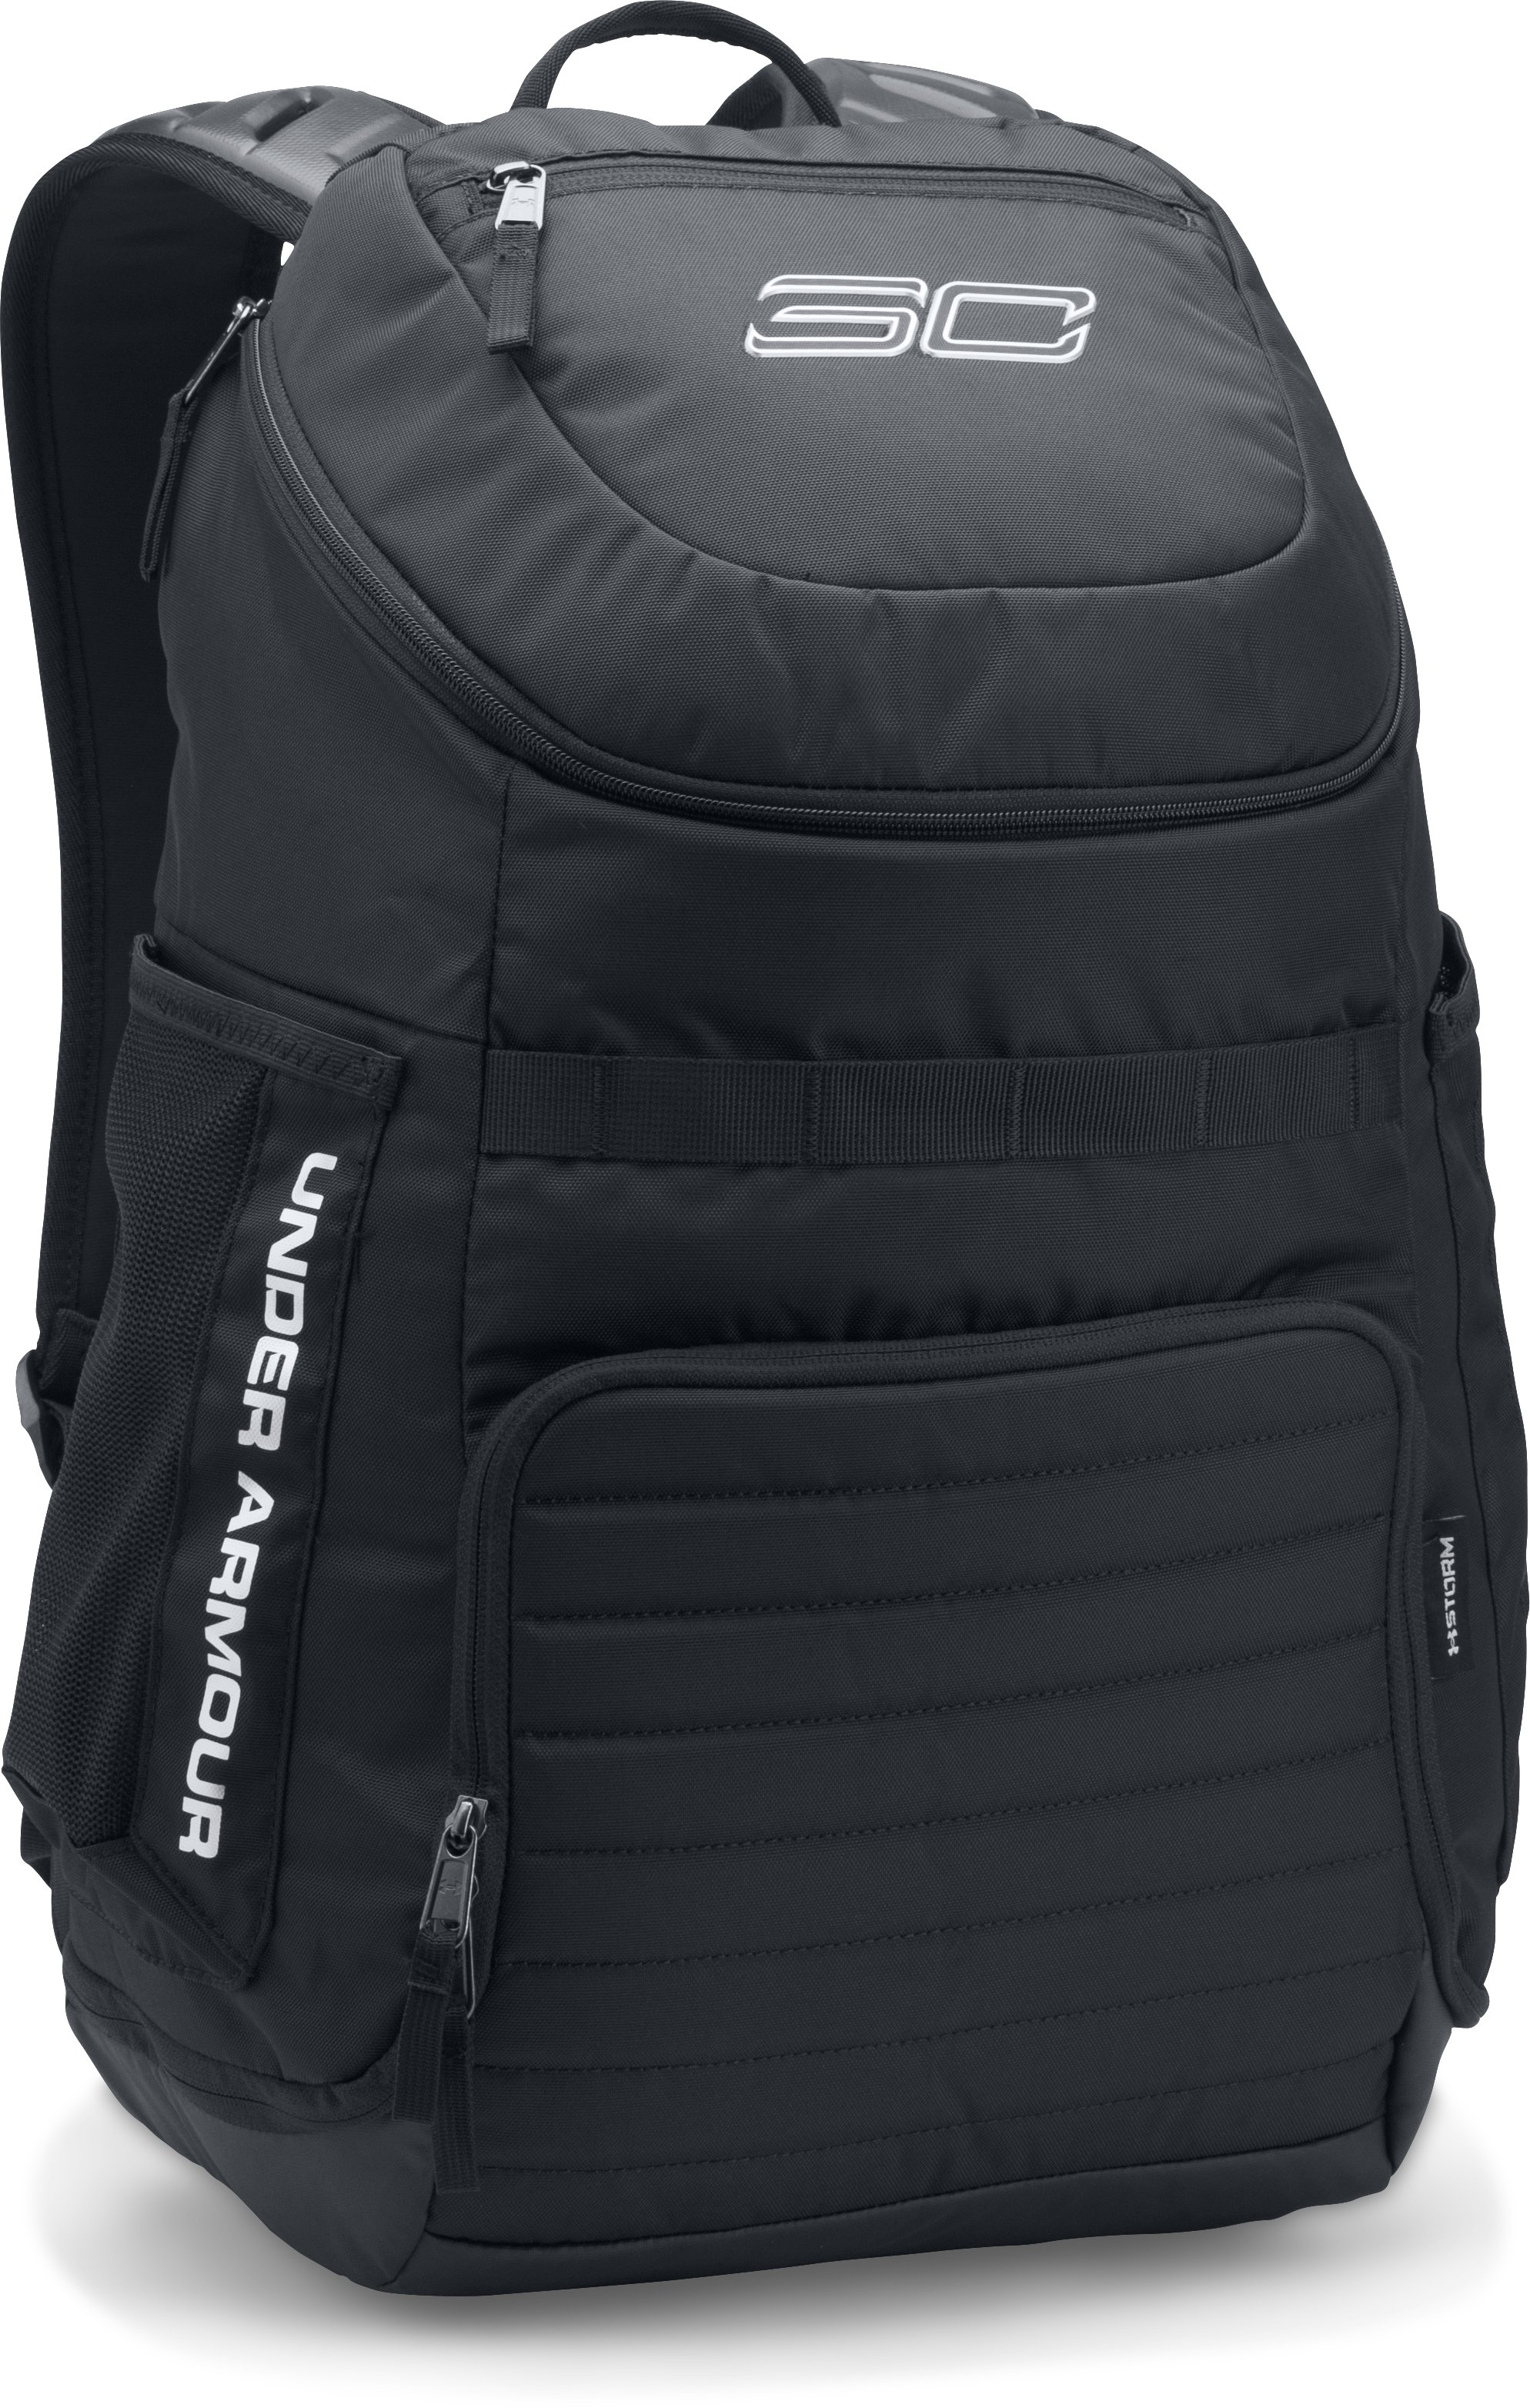 SC30 Undeniable Backpack 2 Colors $74.99